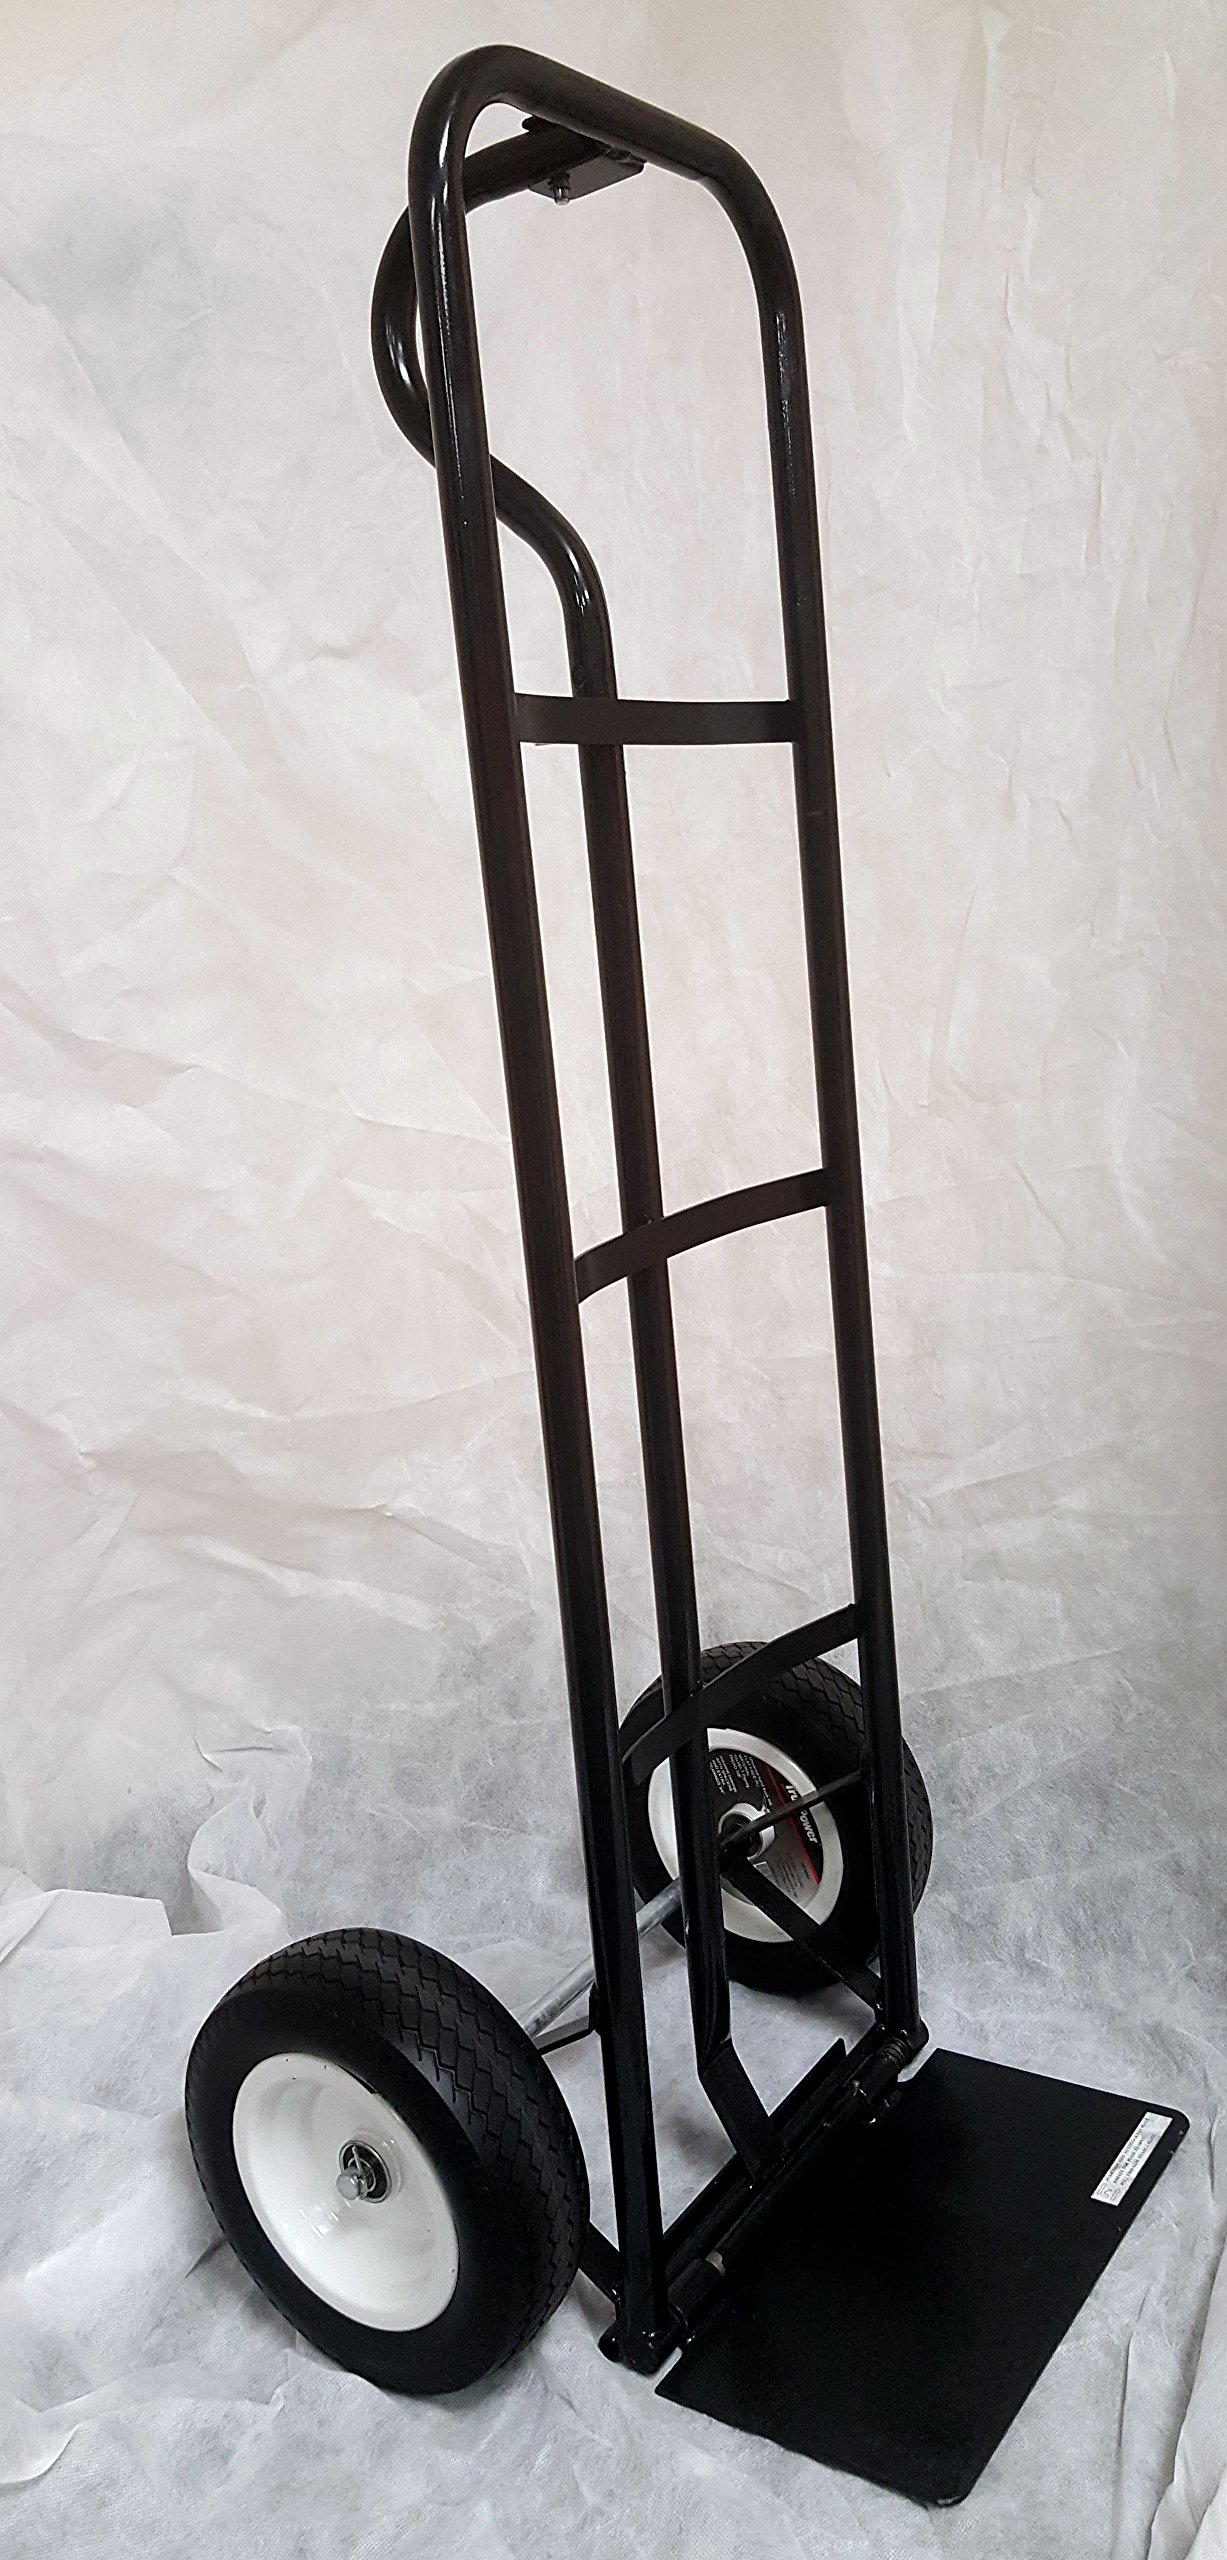 600 Pound Hand Truck with Flat-Free Tires (40-4055)